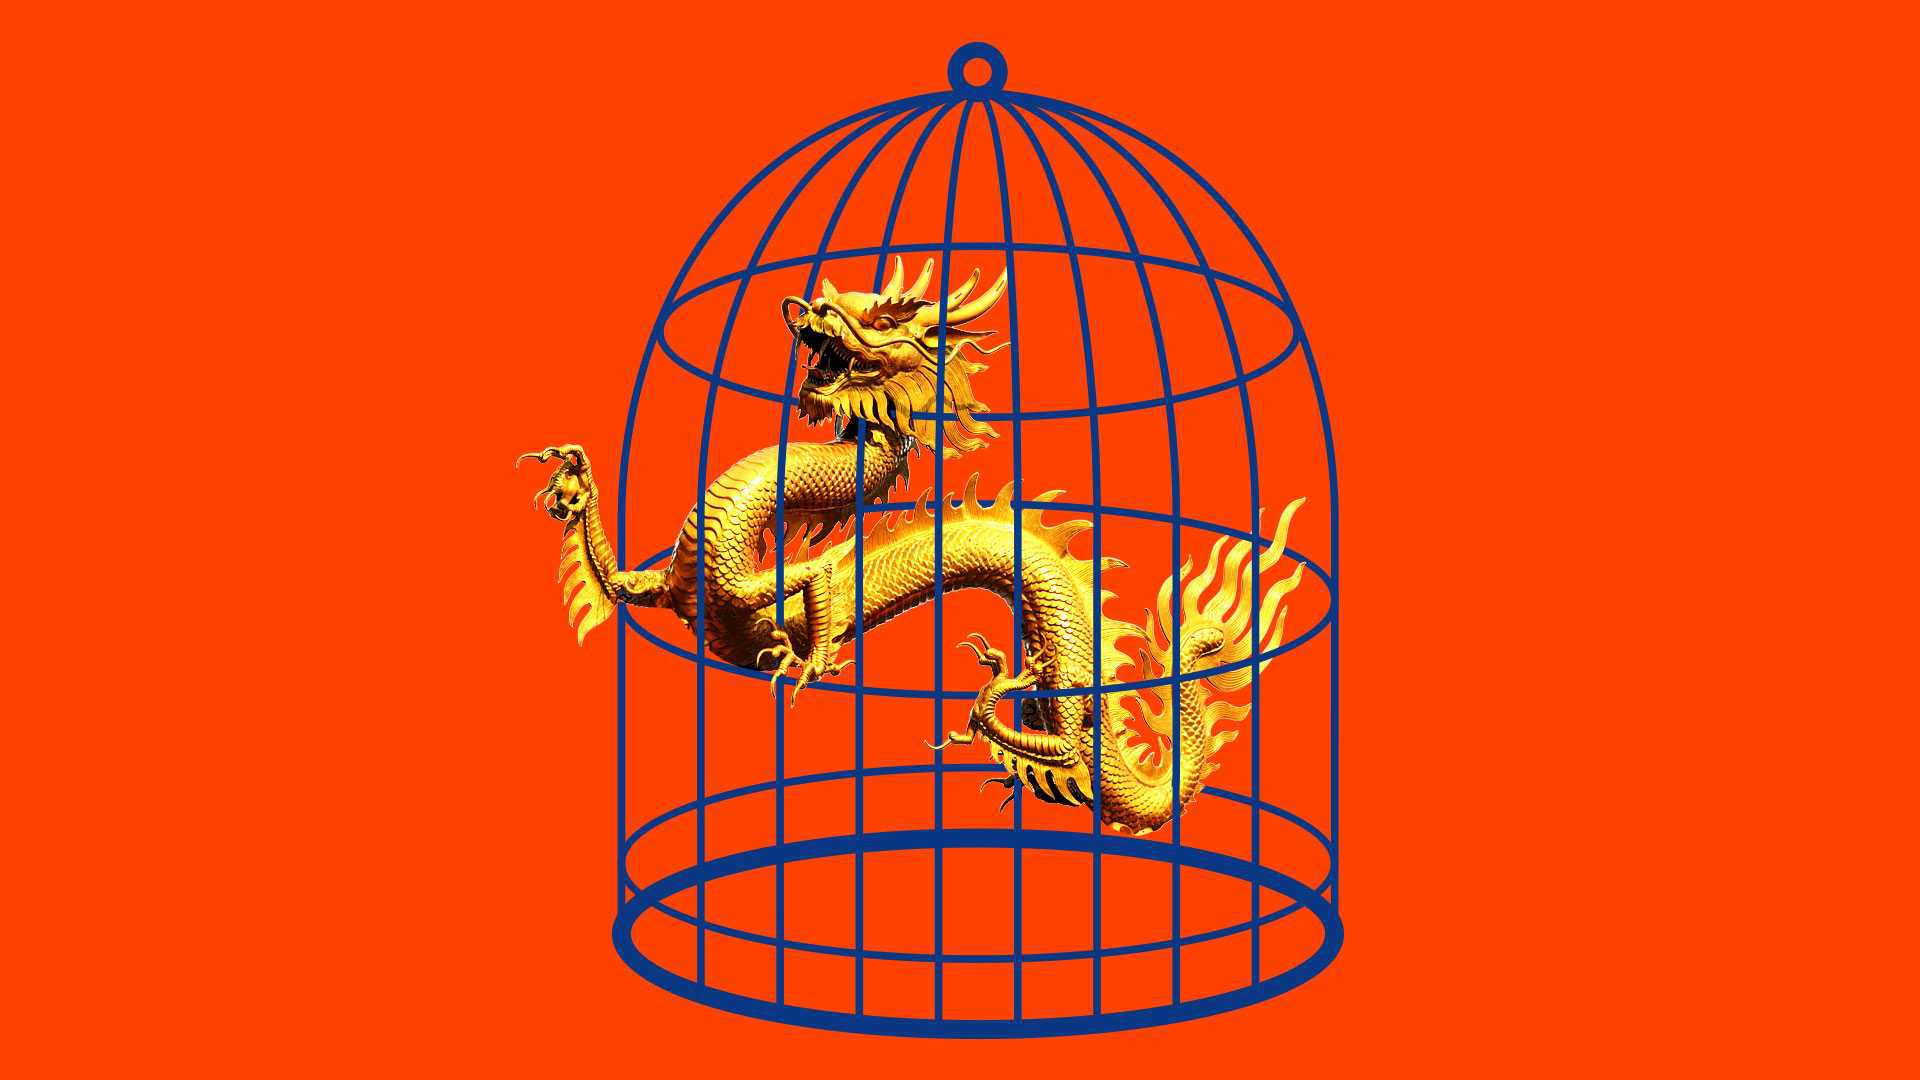 Chinese dragon trapped in a cage.